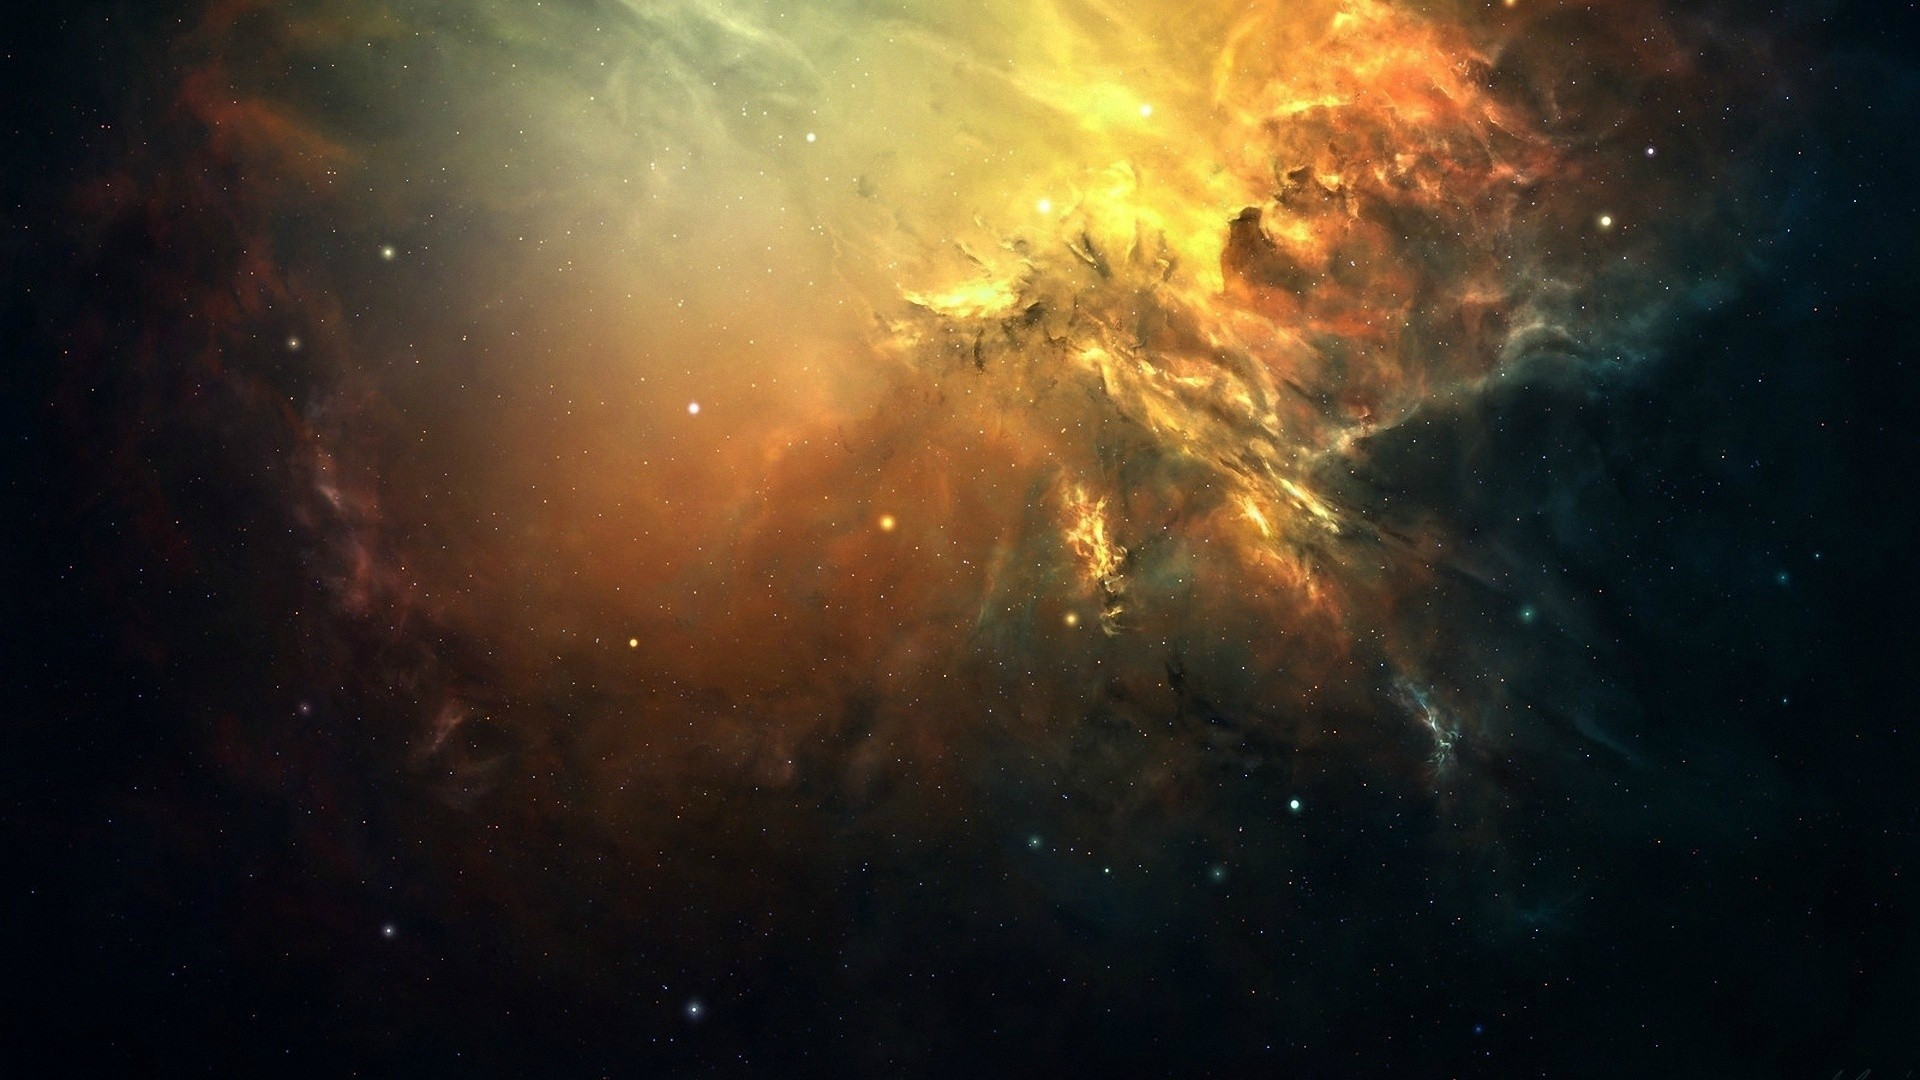 Some Space Wallpapers1